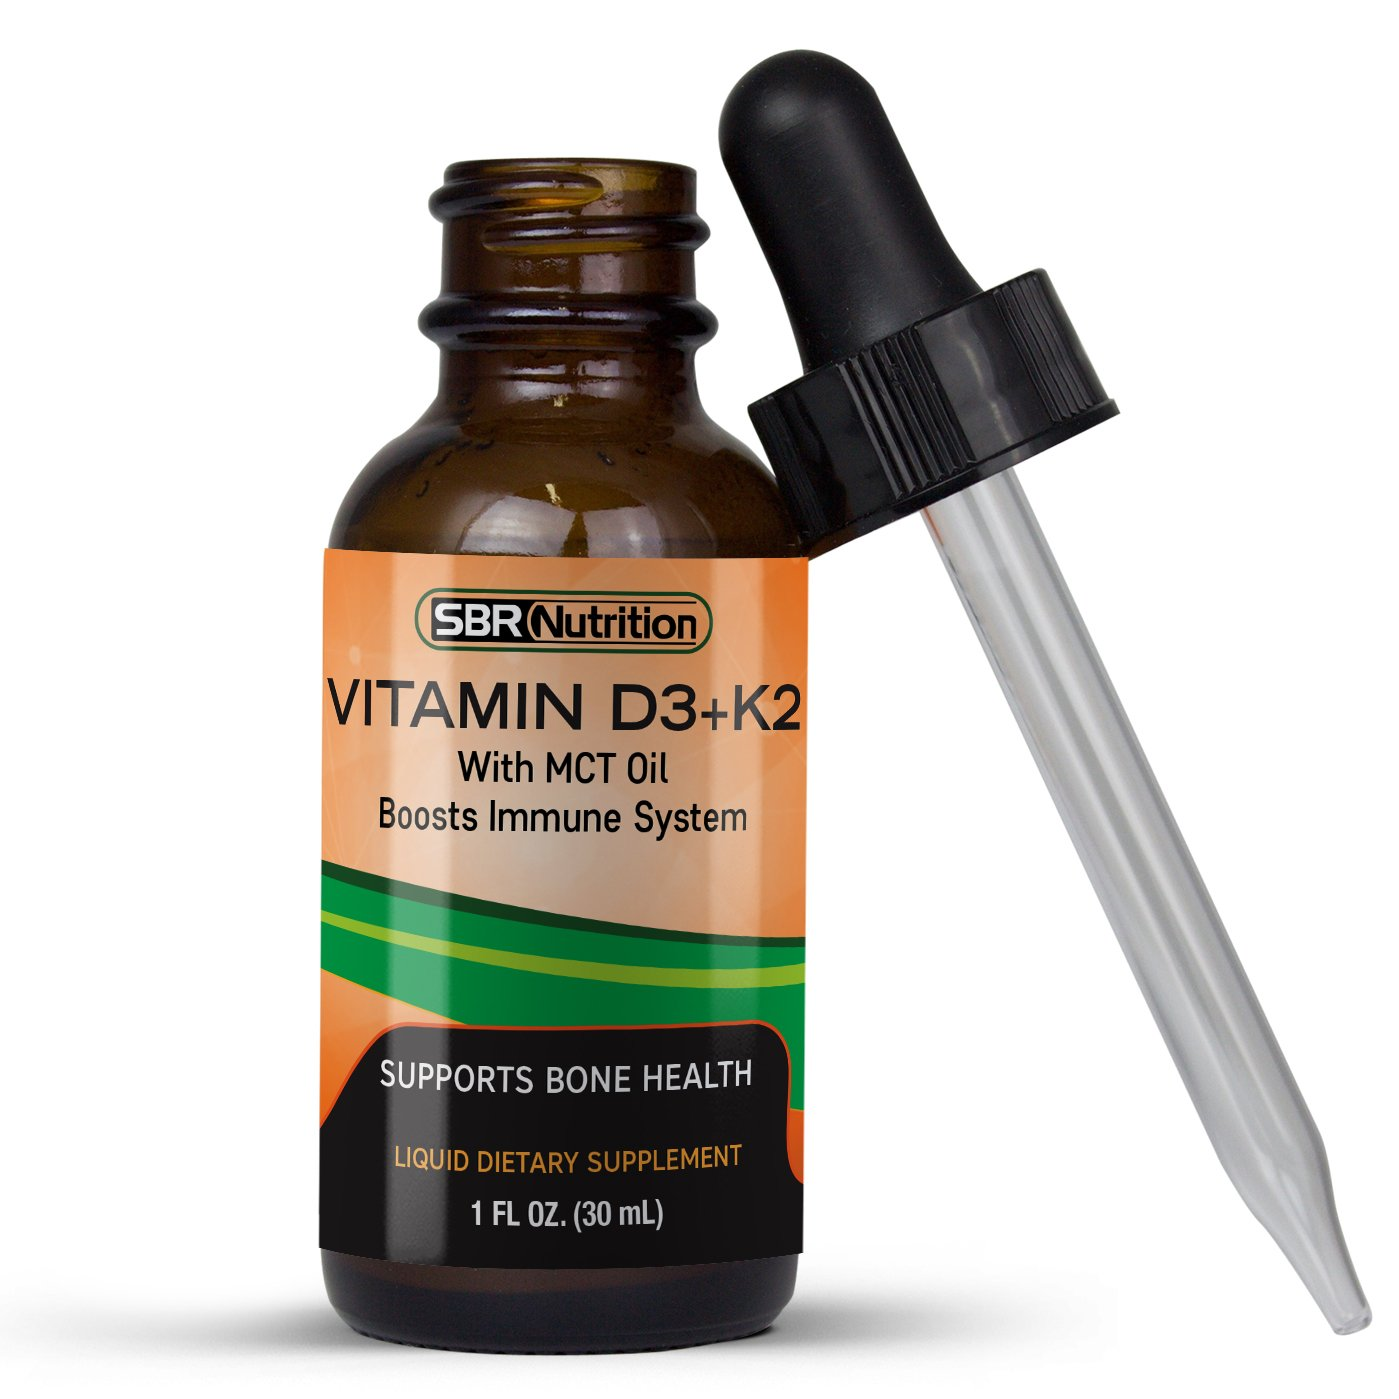 MAX ABSORPTION, Vitamin D3 + K2 (MK-7) Liquid Drops with MCT Oil, Helps Support Strong Bones and Healthy Heart